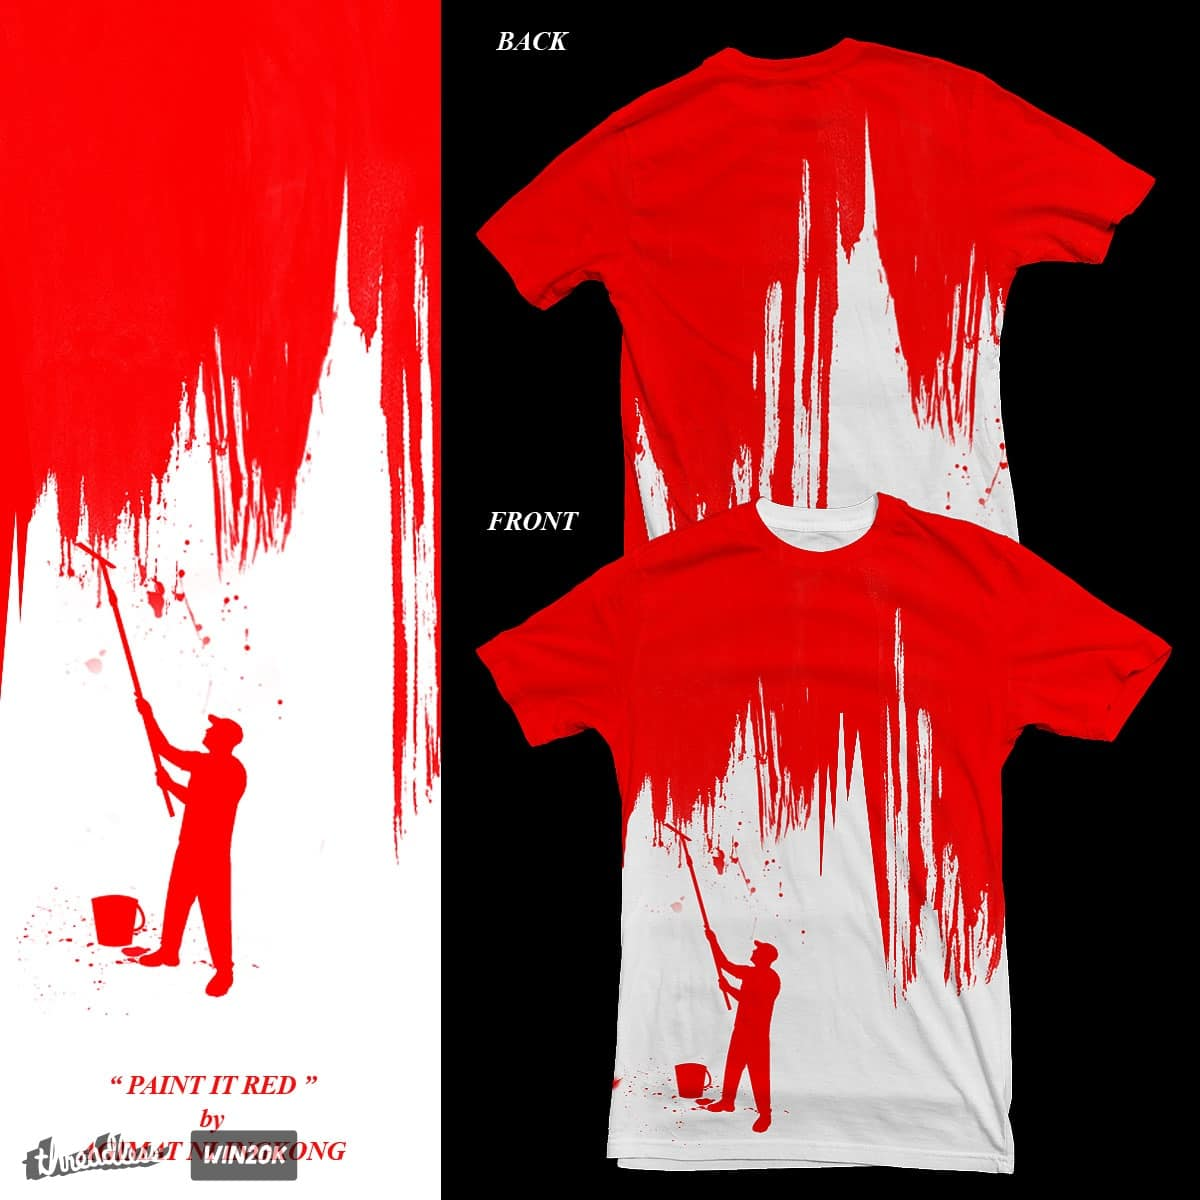 PAINT IT RED. by Agimat ni Ingkong on Threadless